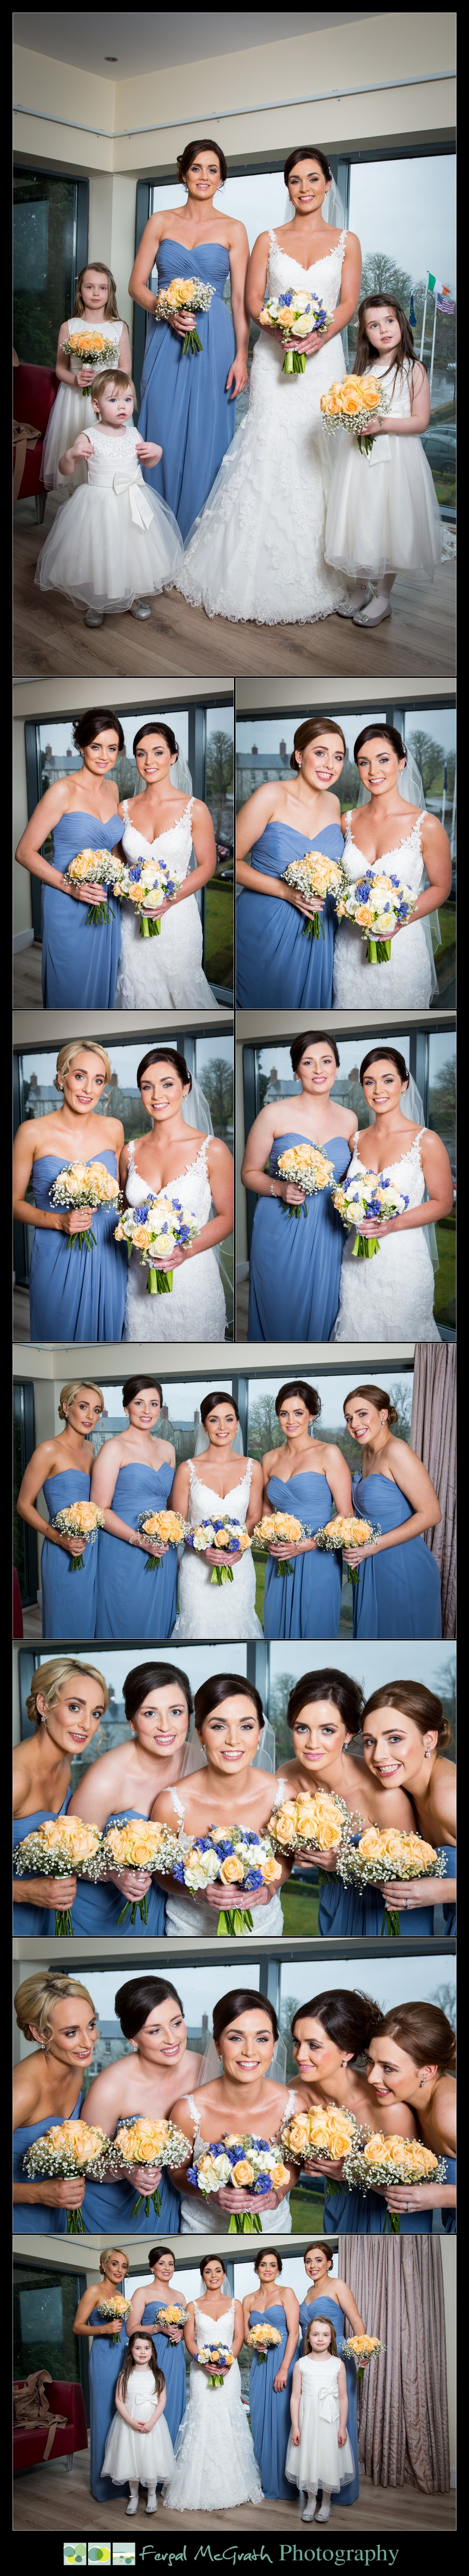 Castle Dargan Hotel Wedding Jamie and Andrew bride and her bridesmaids